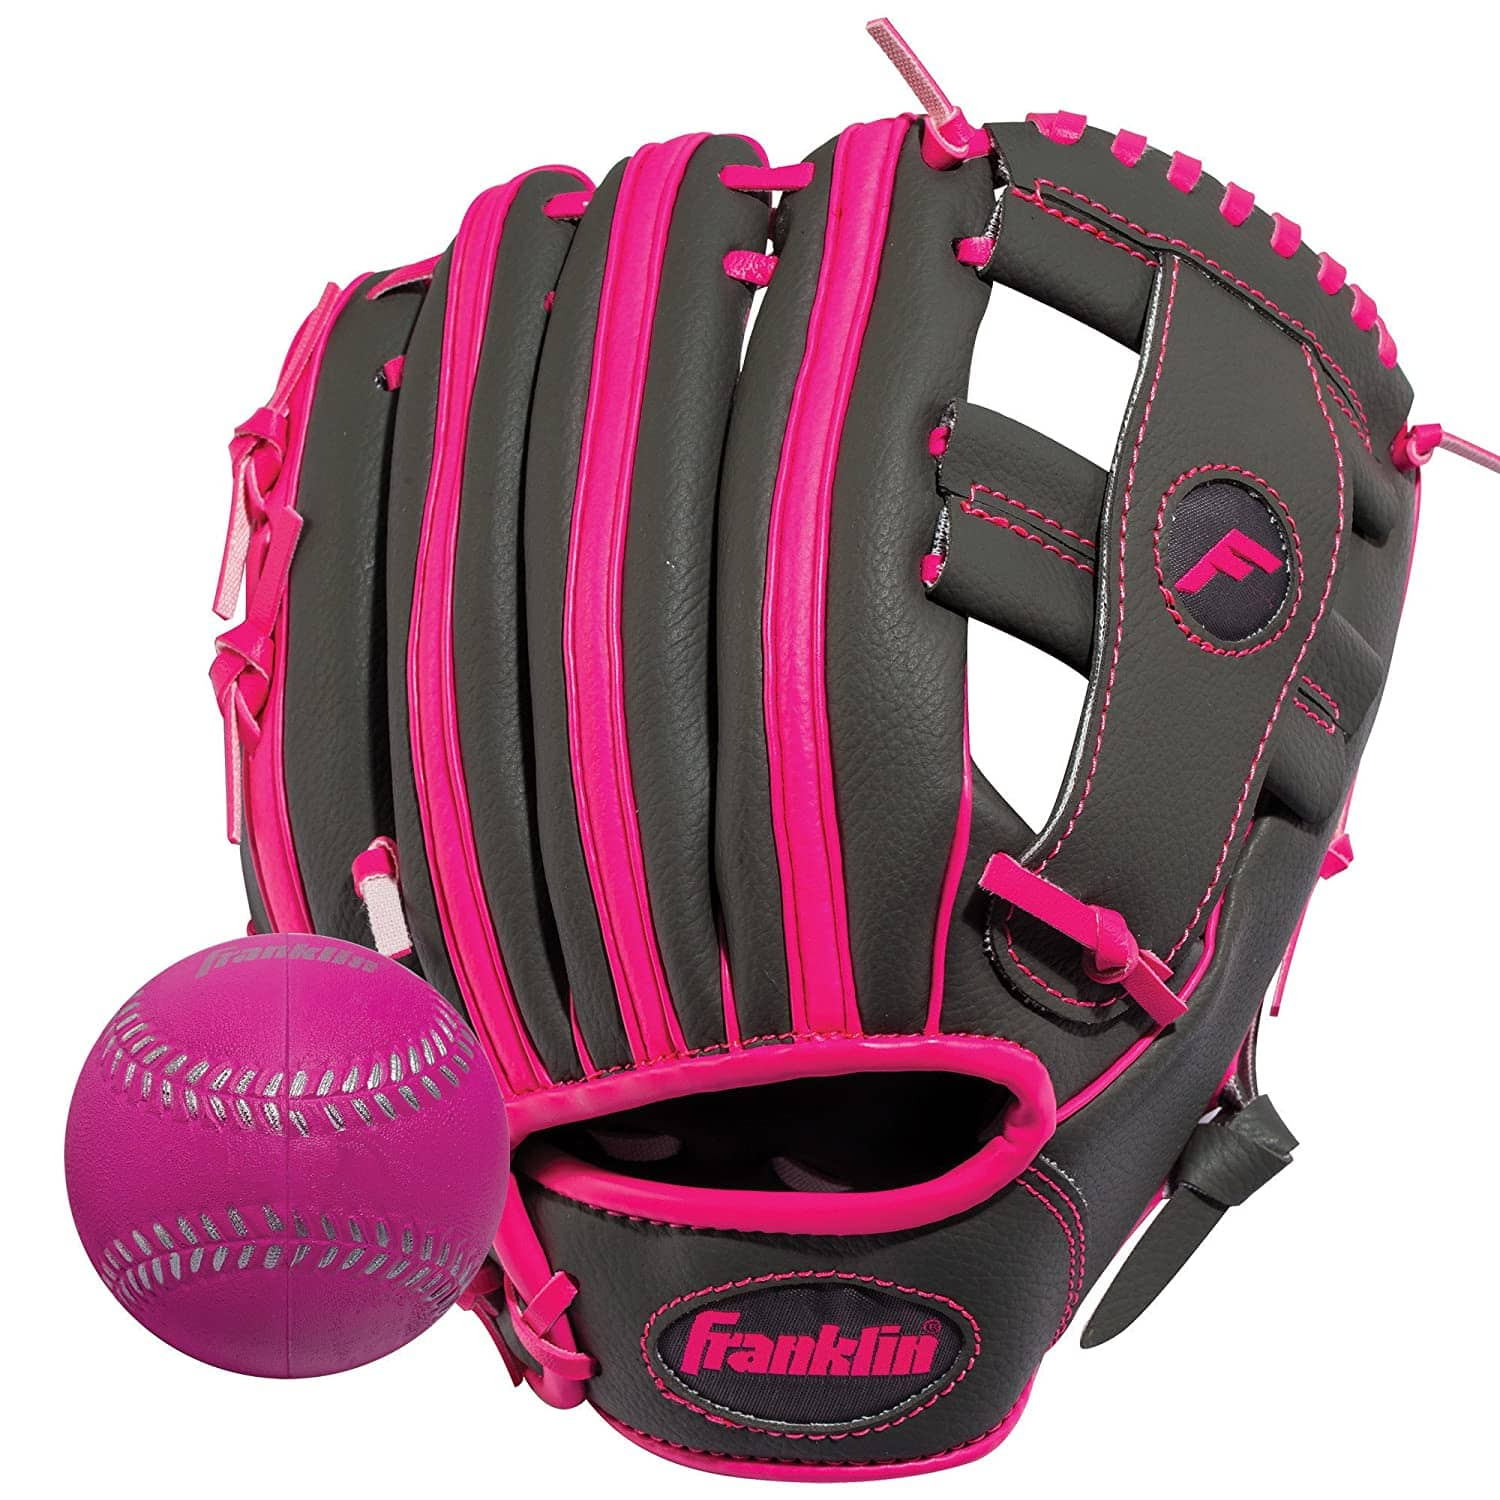 Franklin Sports Teeball Glove - Youth Fielding Glove - Synthetic Leather Baseball Glove -Righthand $9.99 & Lefthand thrower for $10.99